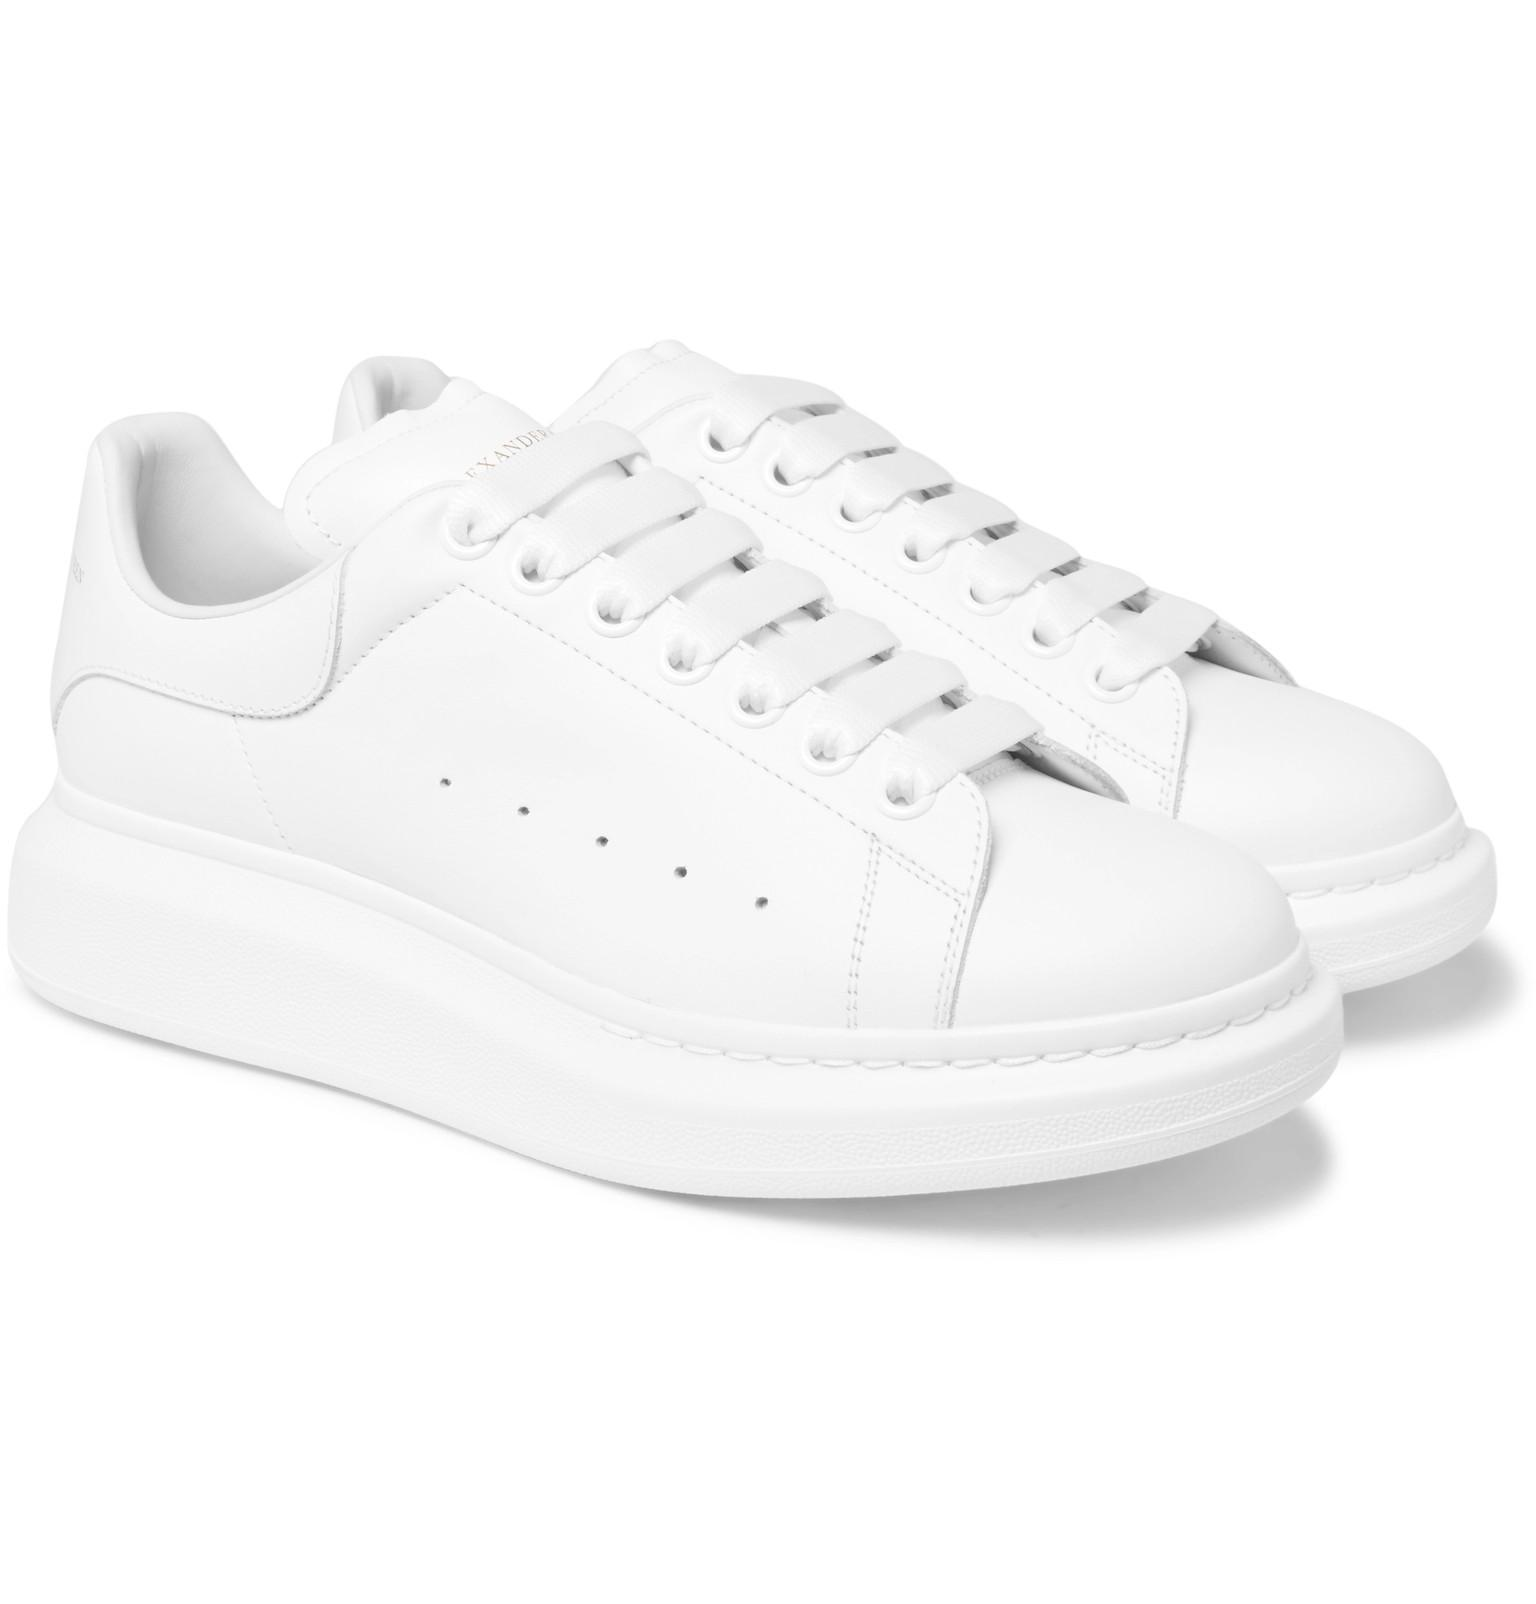 Le Meilleur Alexander Mcqueen Exaggerated Sole Sneakers In White For Ce Mois Ci